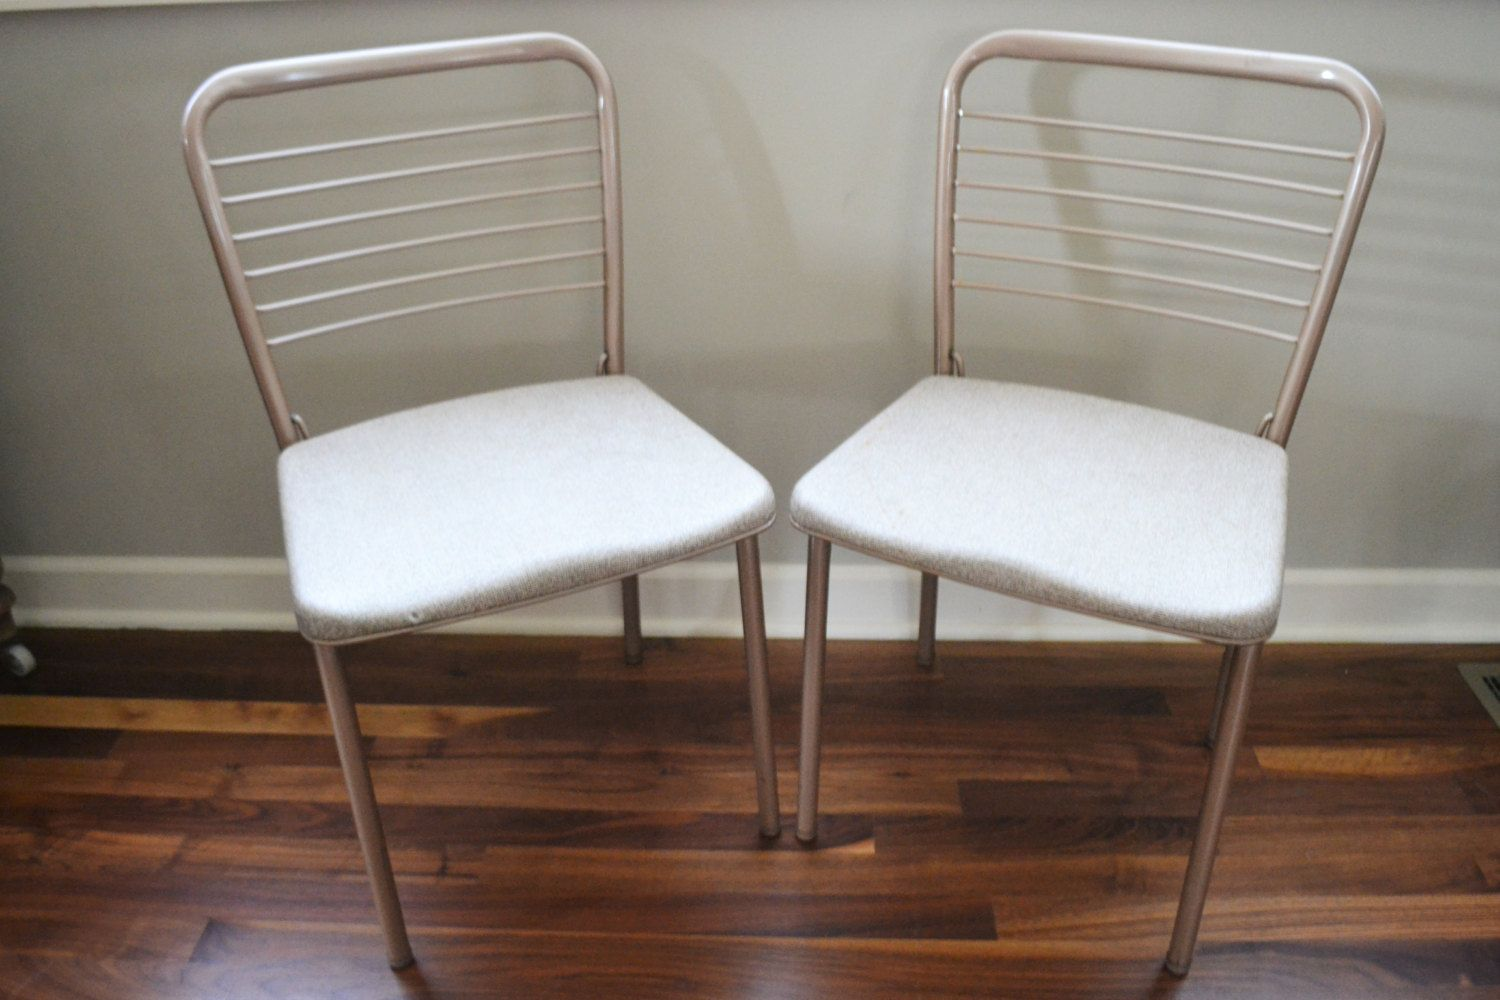 Set Of Retro Folding Chairs Vintage Cosco Chairs Mid Century - Mid century modern card table